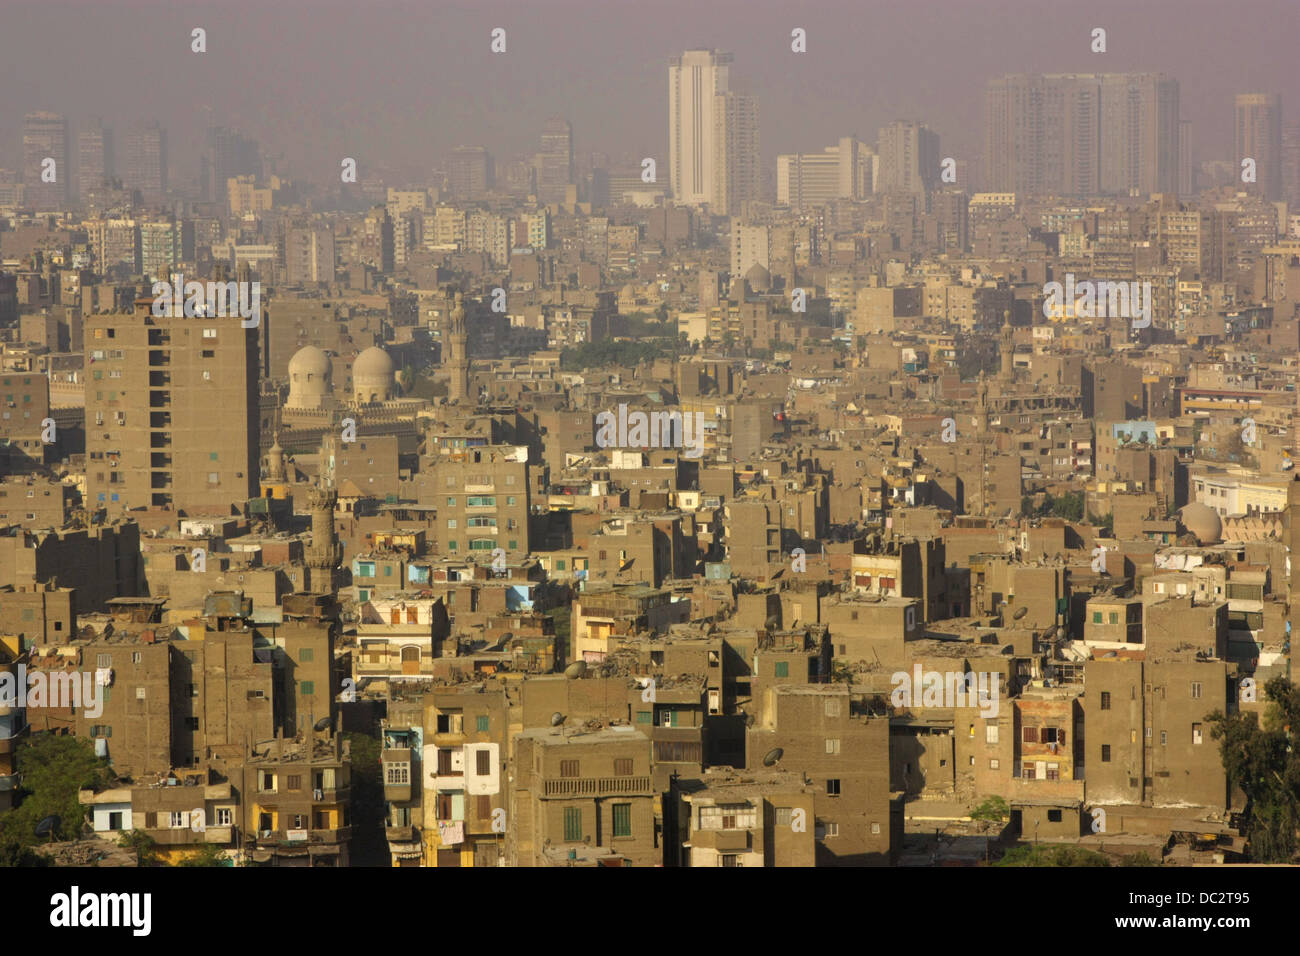 Cairo on hot day - Stock Image